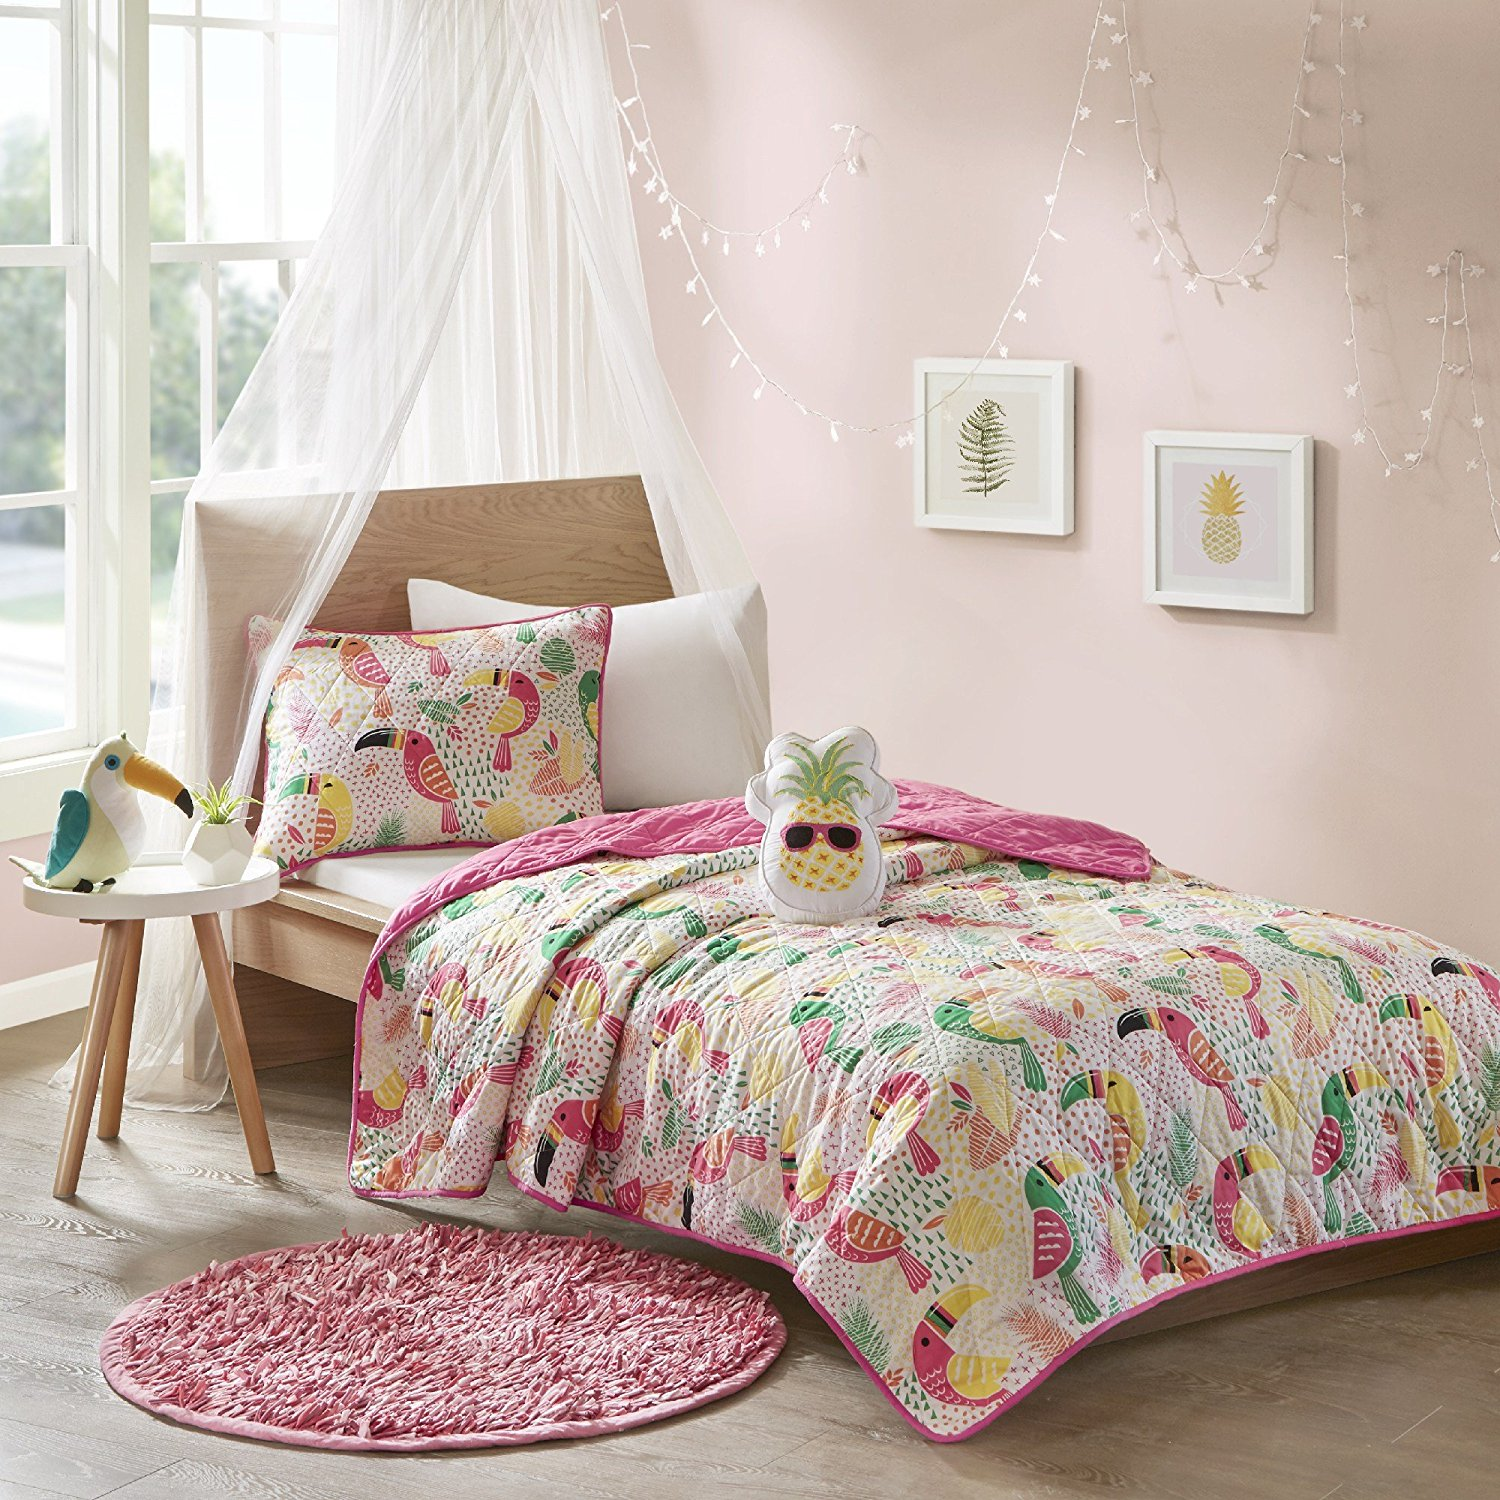 N2 4 Piece Girls White Yellow Green Pink Toucan Themed Coverlet Full Queen Set, All Over Tropical Birds Bedding, Fun Kids Multi Color Rain Forest Bird Geometric Botanical Leaf Pattern, Polyester